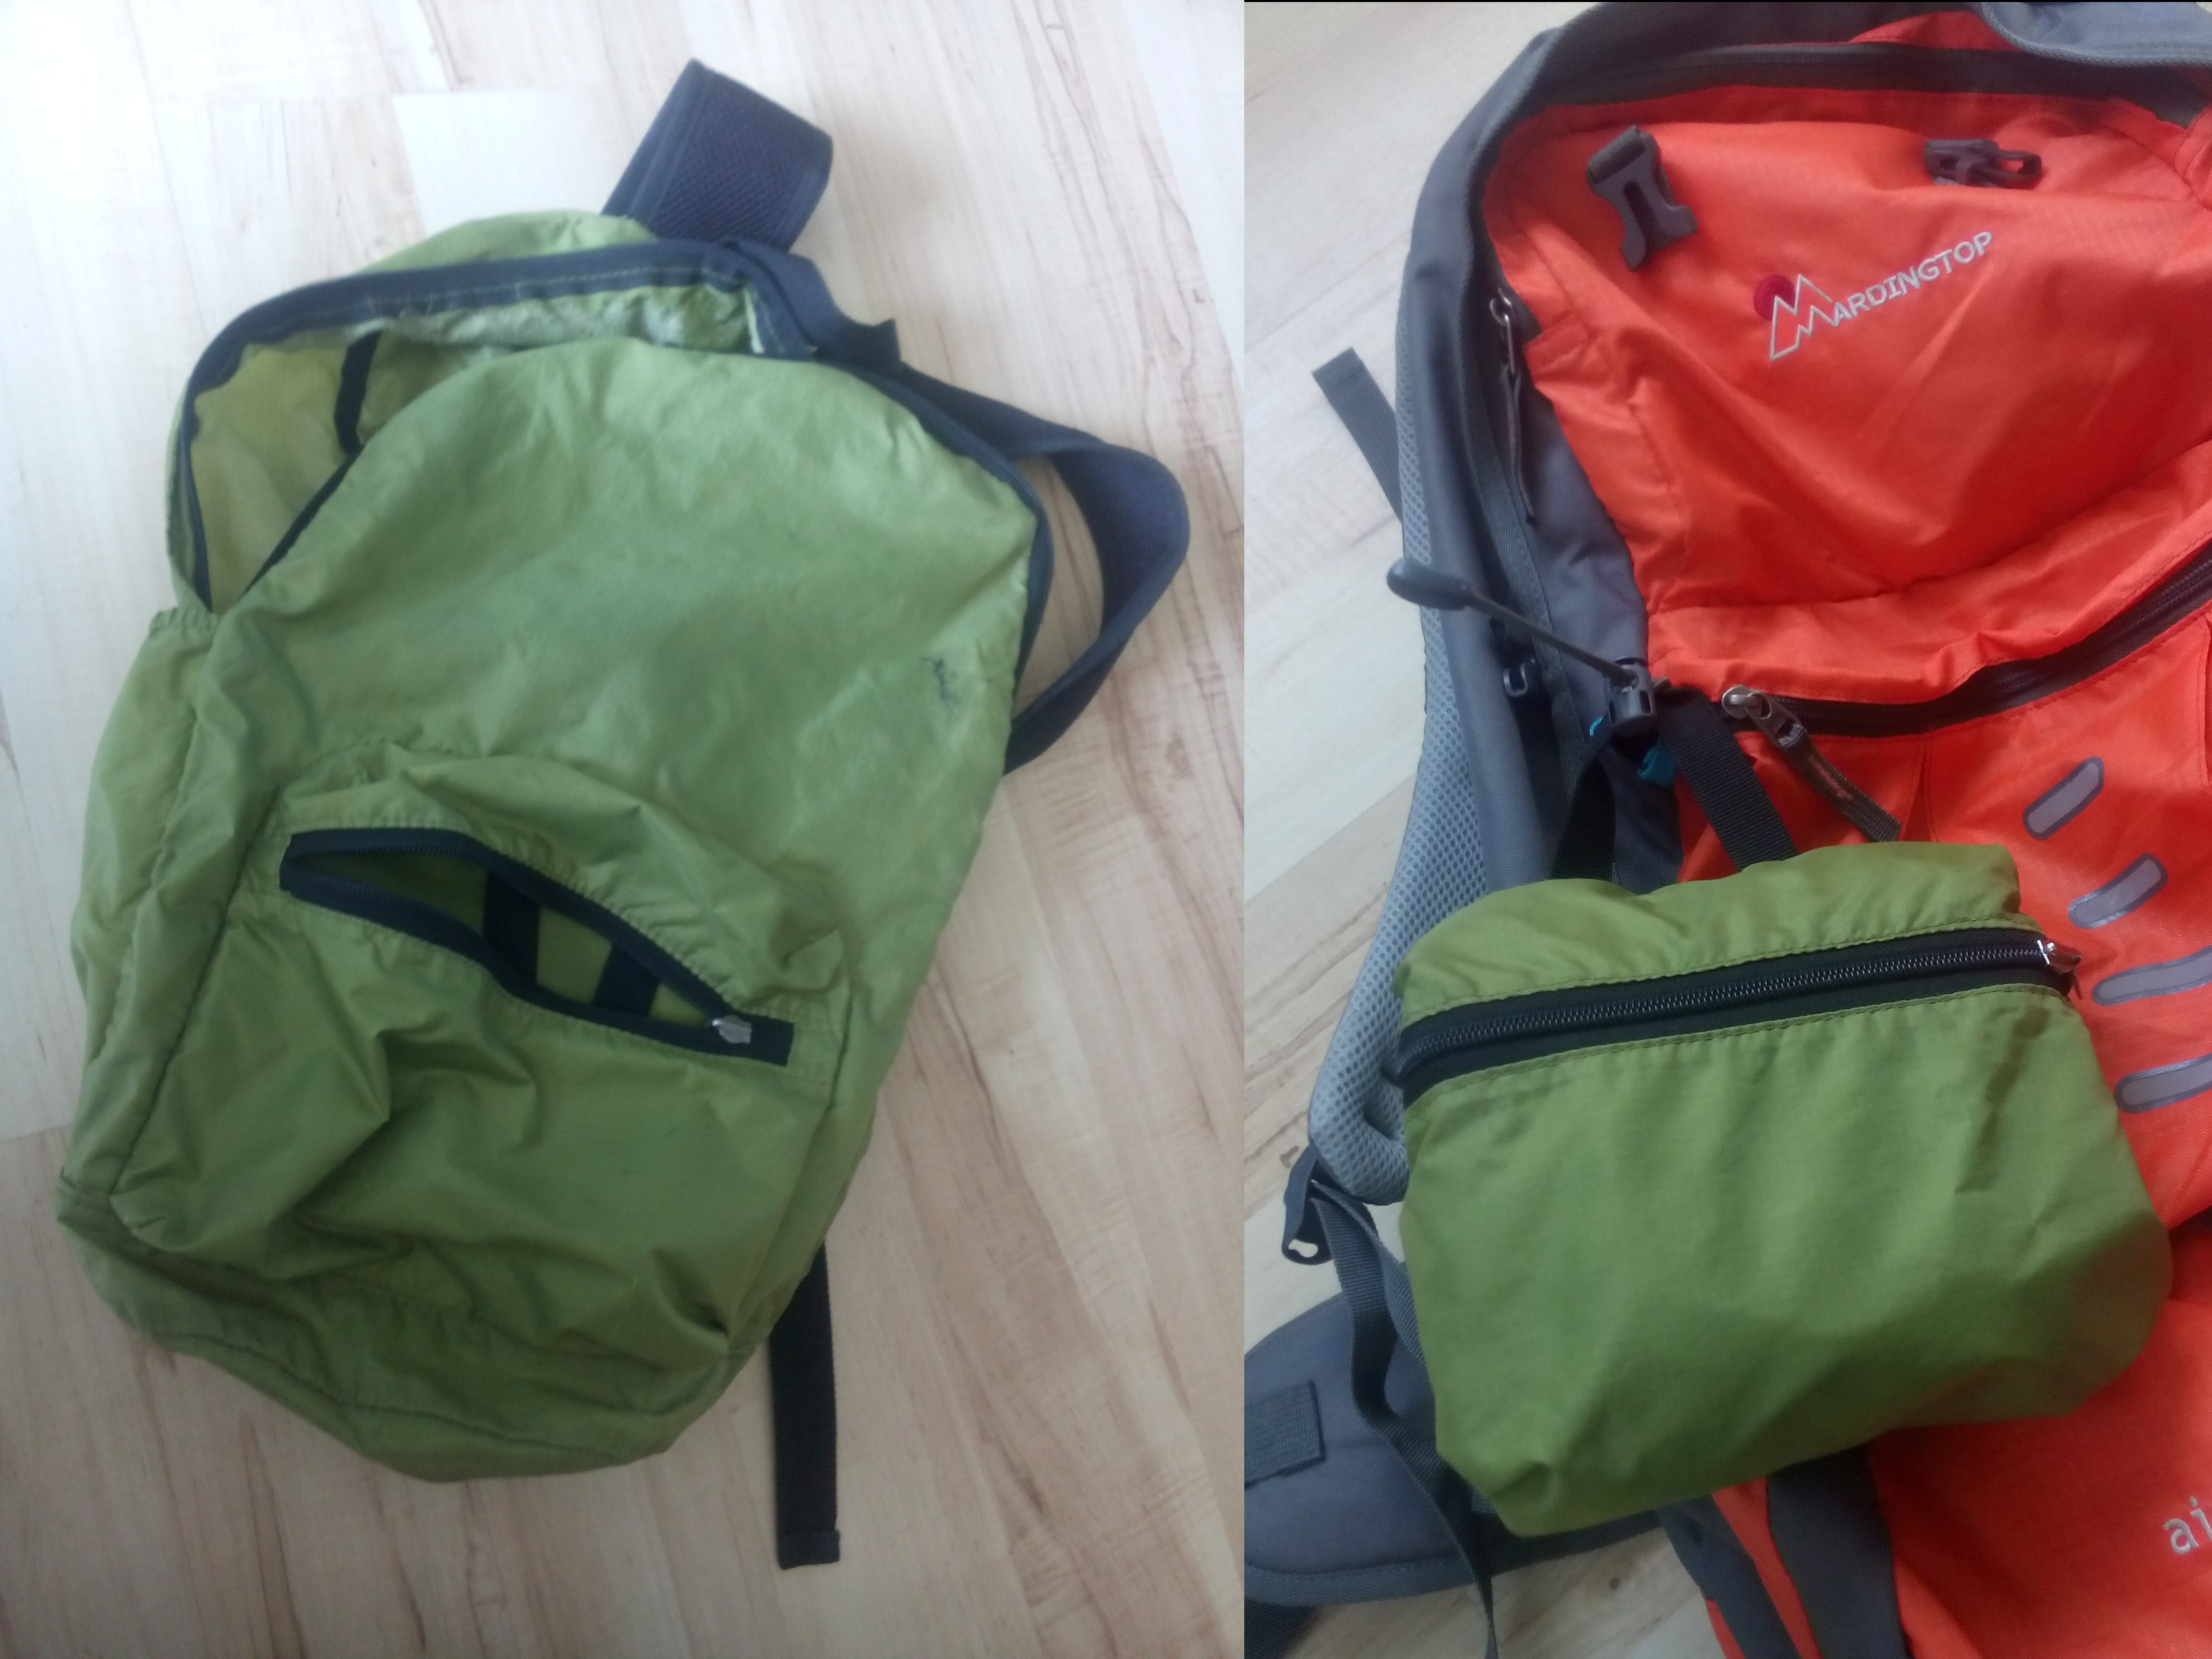 A composite image of the same small green backpack on a floor, on the right open out and on the left folded in on itself into a pocket